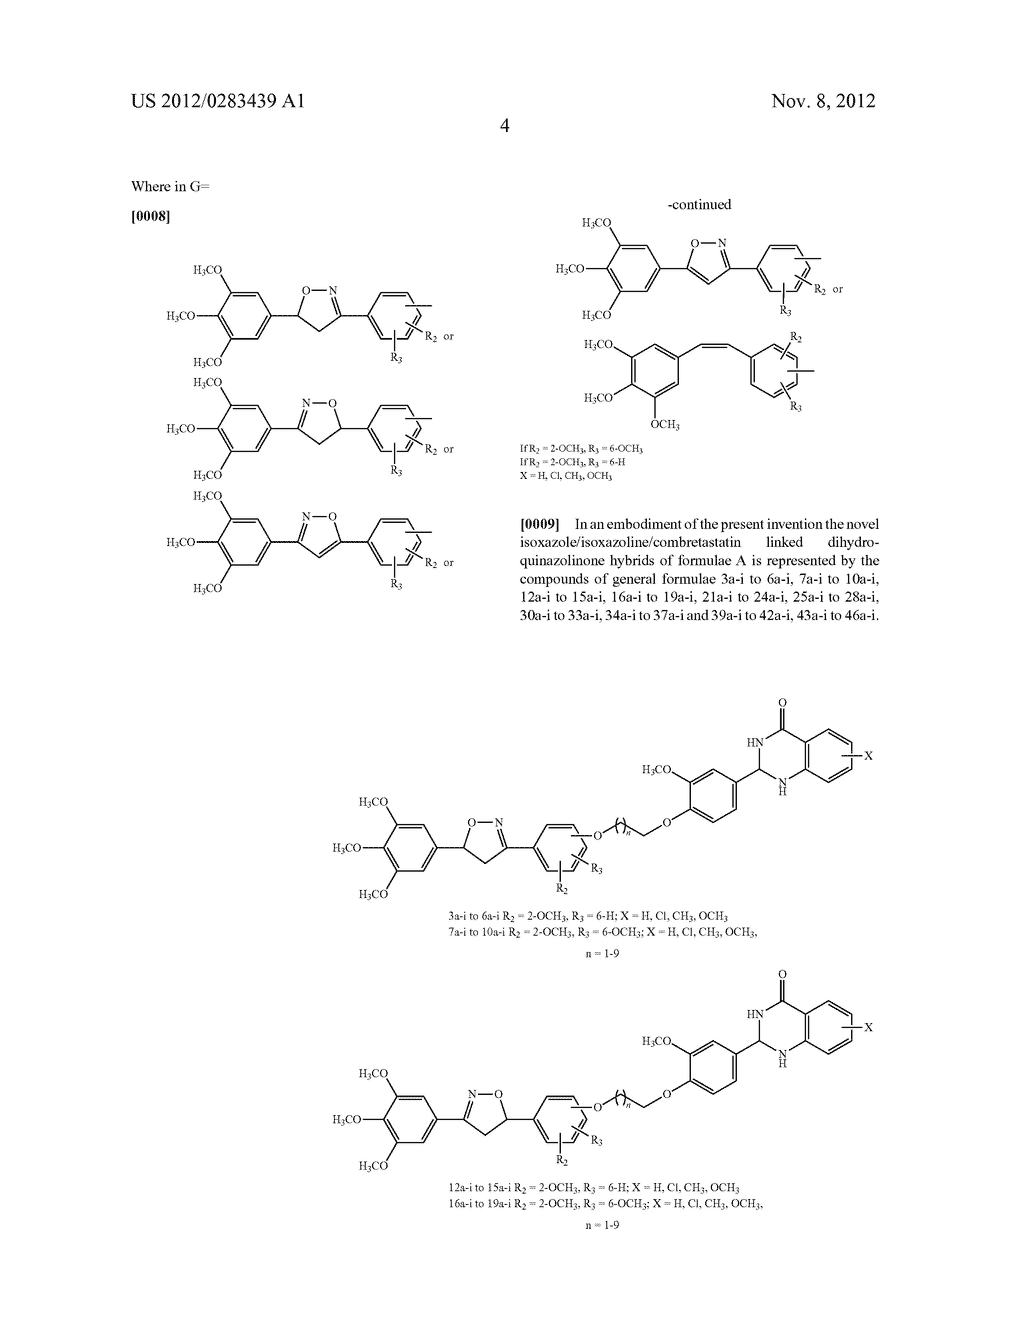 ISOXAZOLE/ISOXAZOLINE/COMBRETASTATIN LINKED DIHYDROQUINAZOLINONE HYBRIDS     AS POTENTIAL ANTICANCER AGENTS AND PROCESS FOR THE PREPARATION THEREOF - diagram, schematic, and image 06